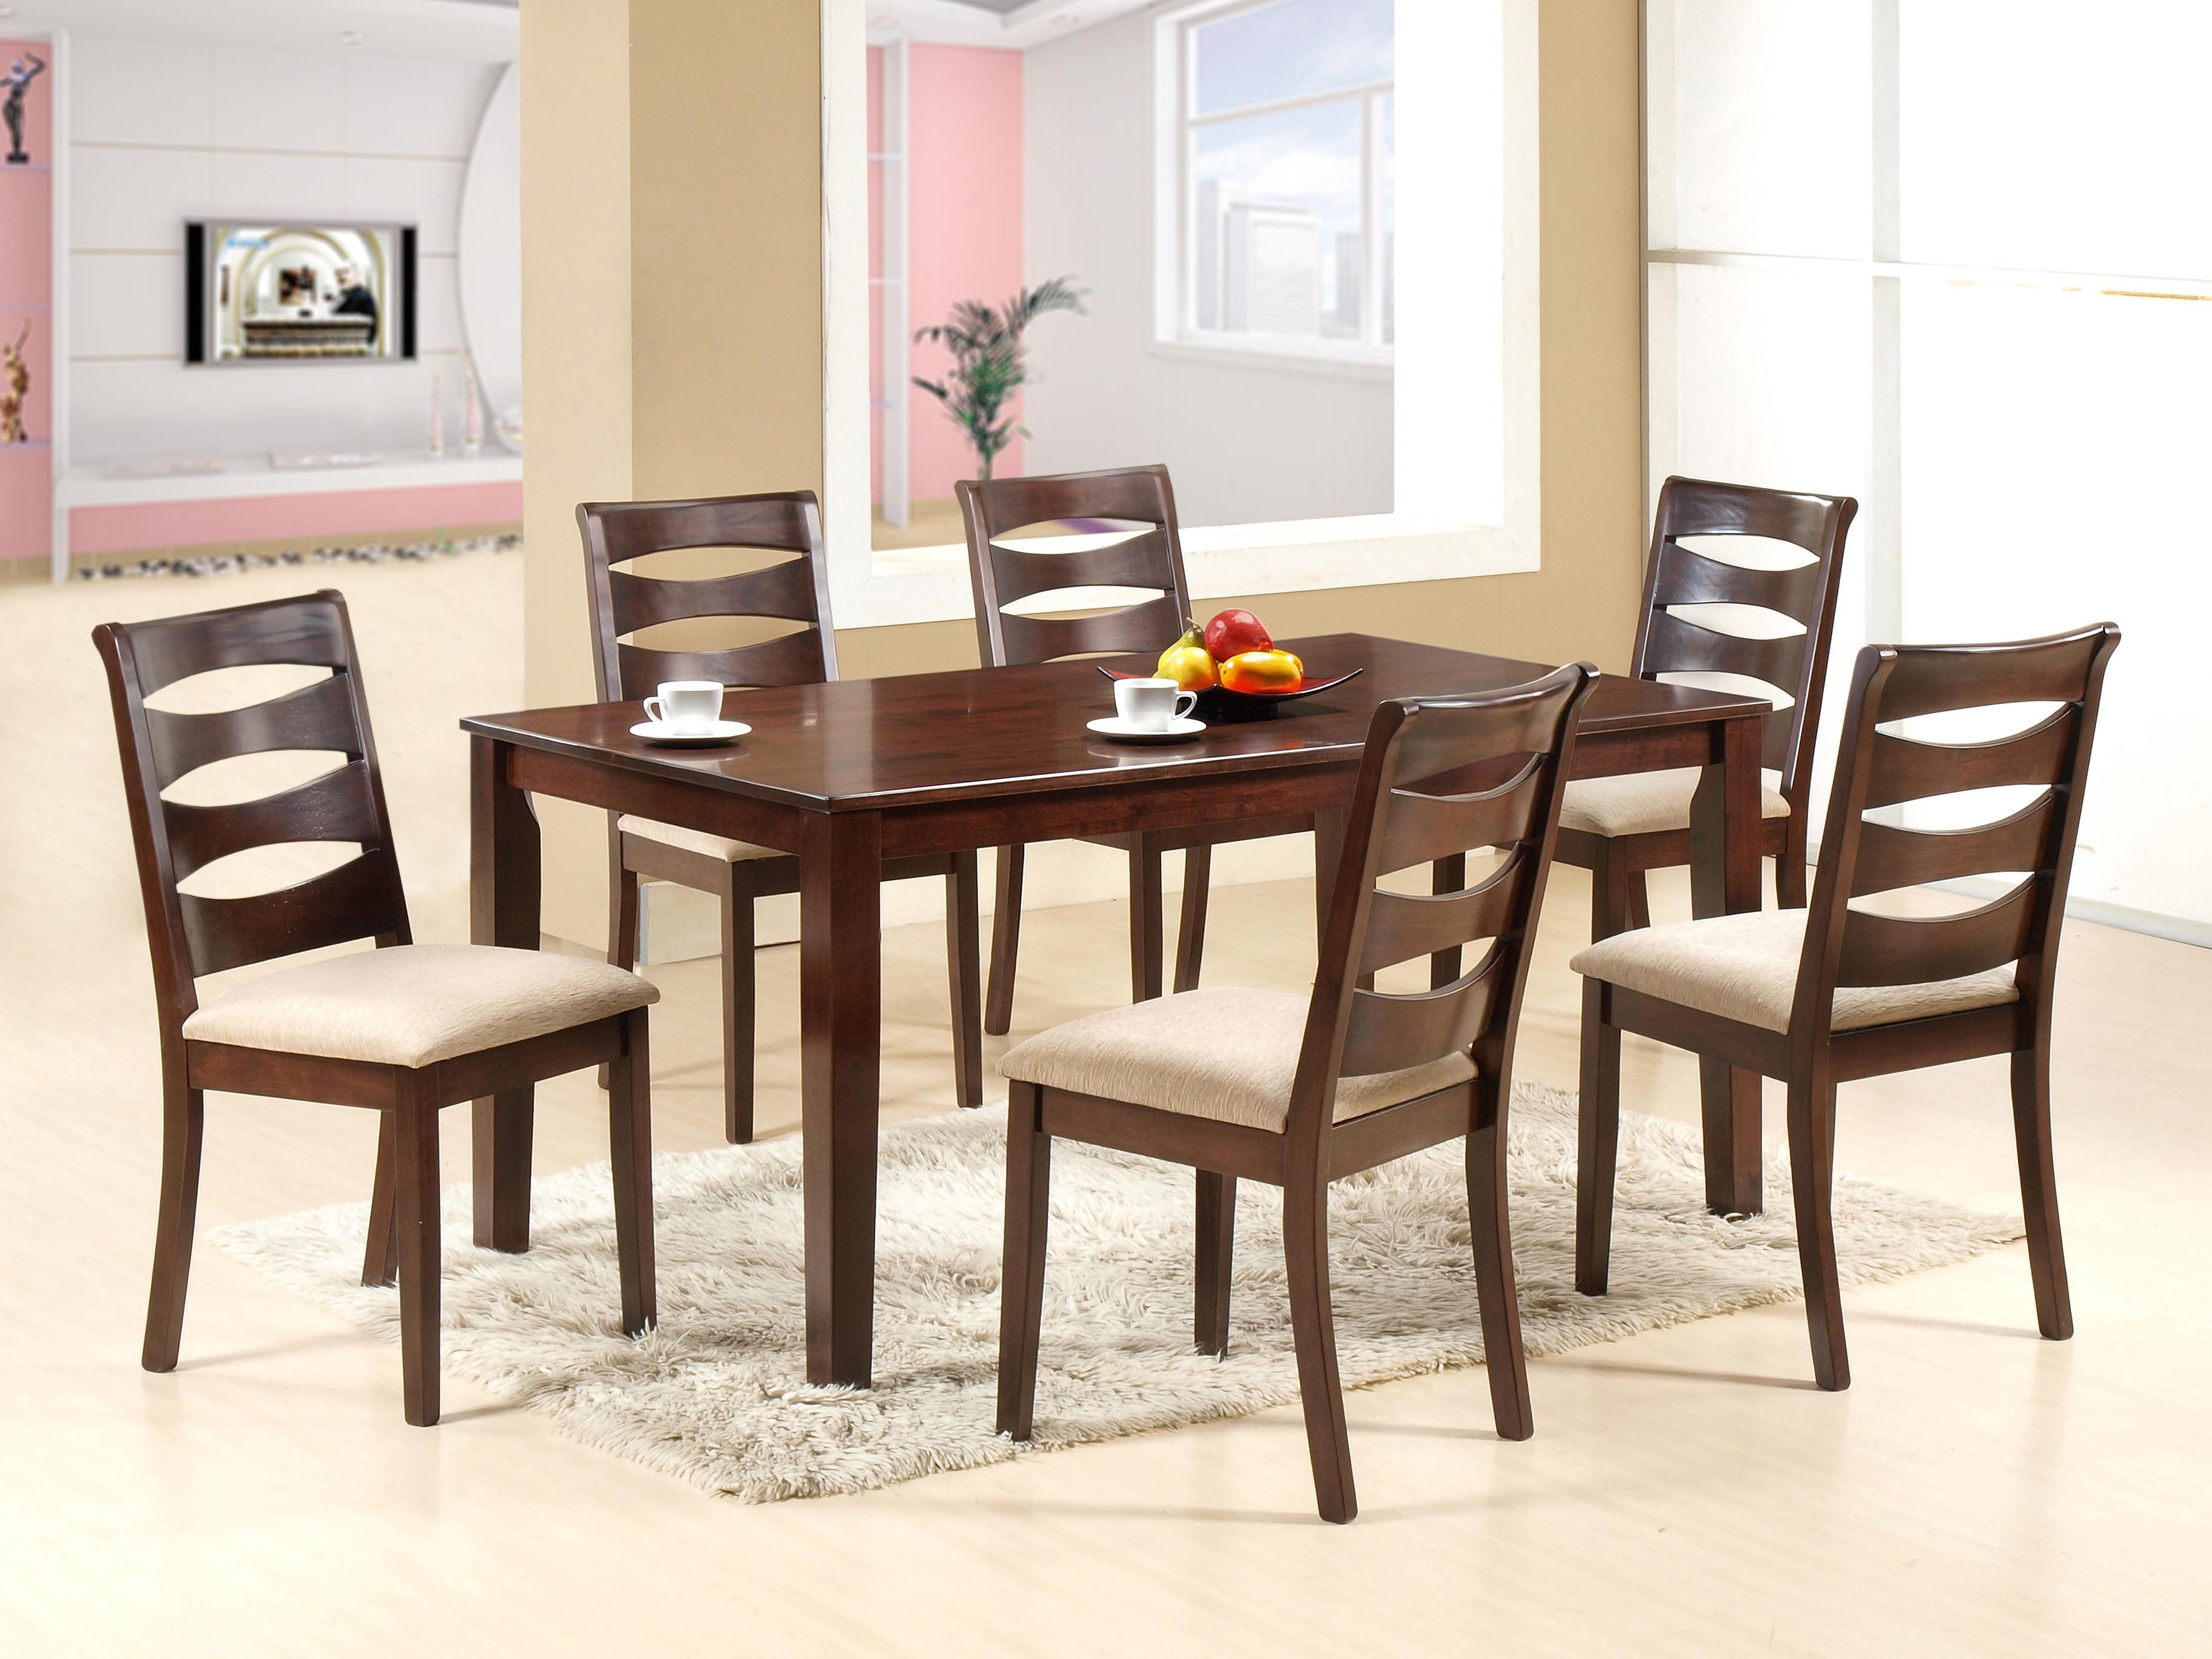 NEW SANDY DINING SET - This dining table\'s simple, sleek design ...